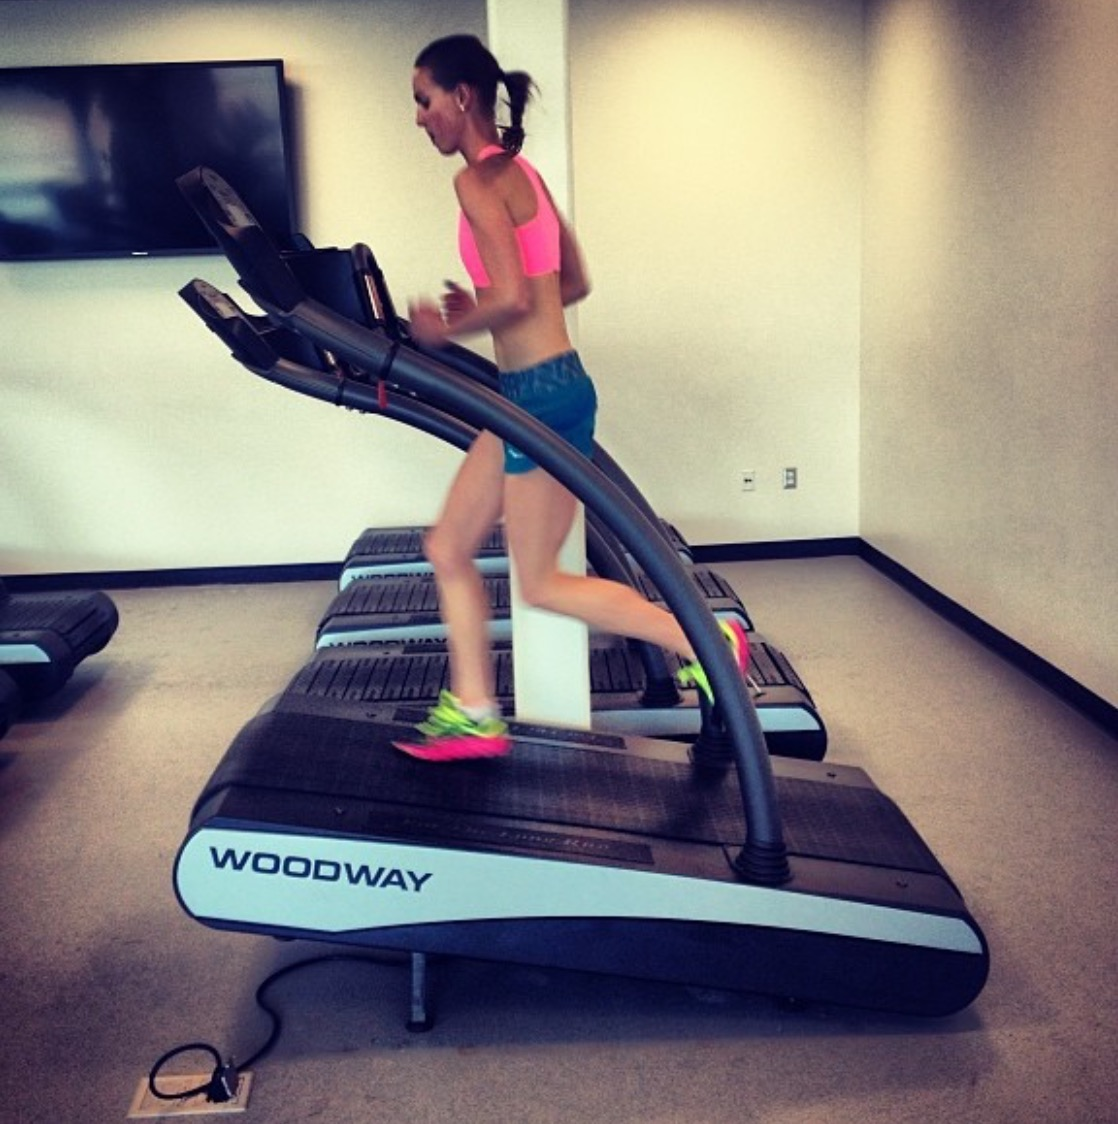 One of my former stud athletes at Cal, Chelsea Sodaro using the Woodway for incline work. Chelsea has personal bests of 4:30 in the mile, 8:47 for 3k, and 15:10 for 5k.